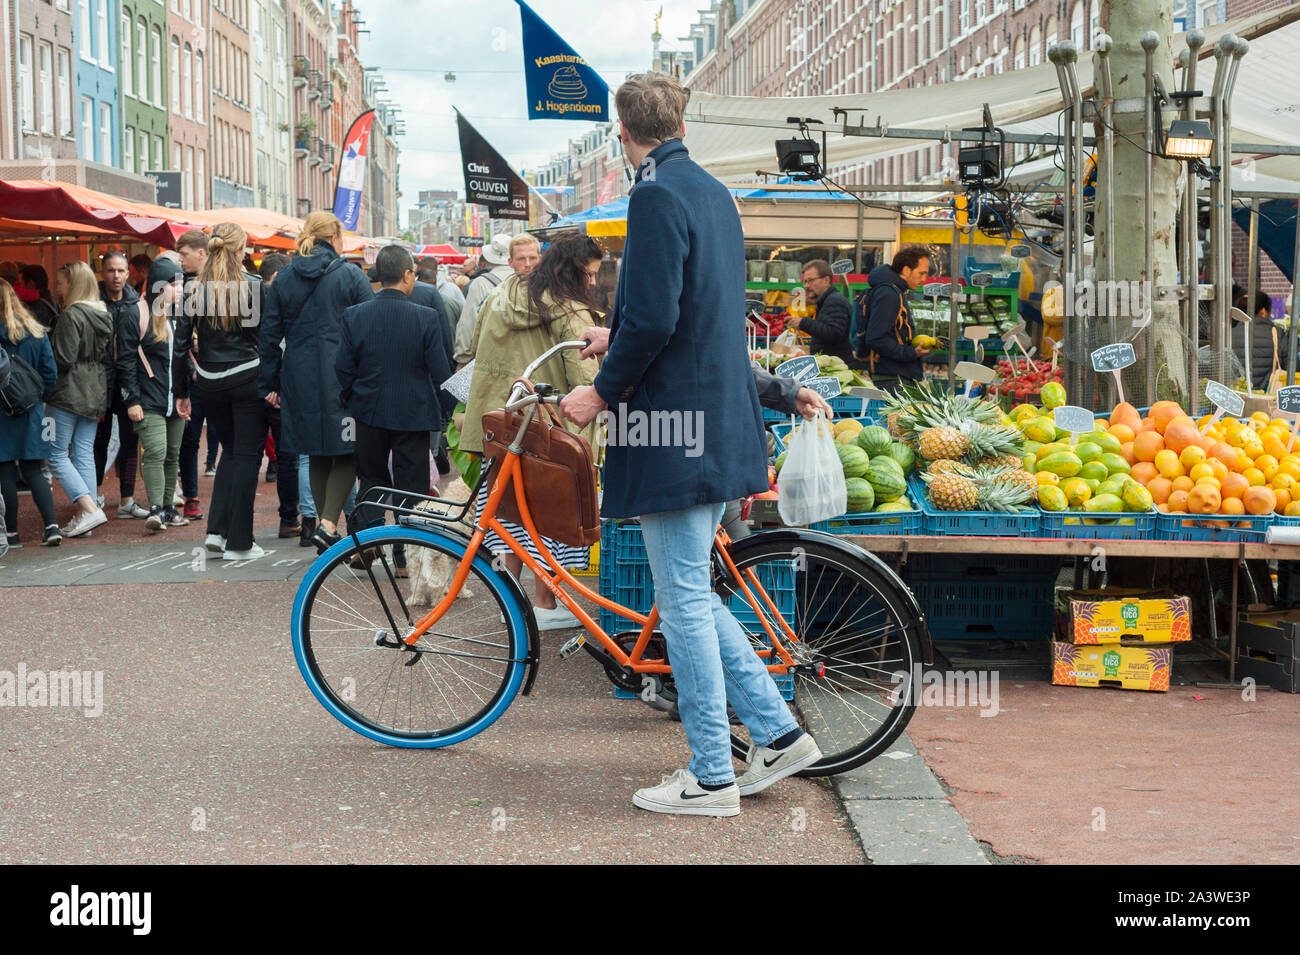 Albert Cuypmarket in Amsterdam and market stall with fruits. Stock Photo